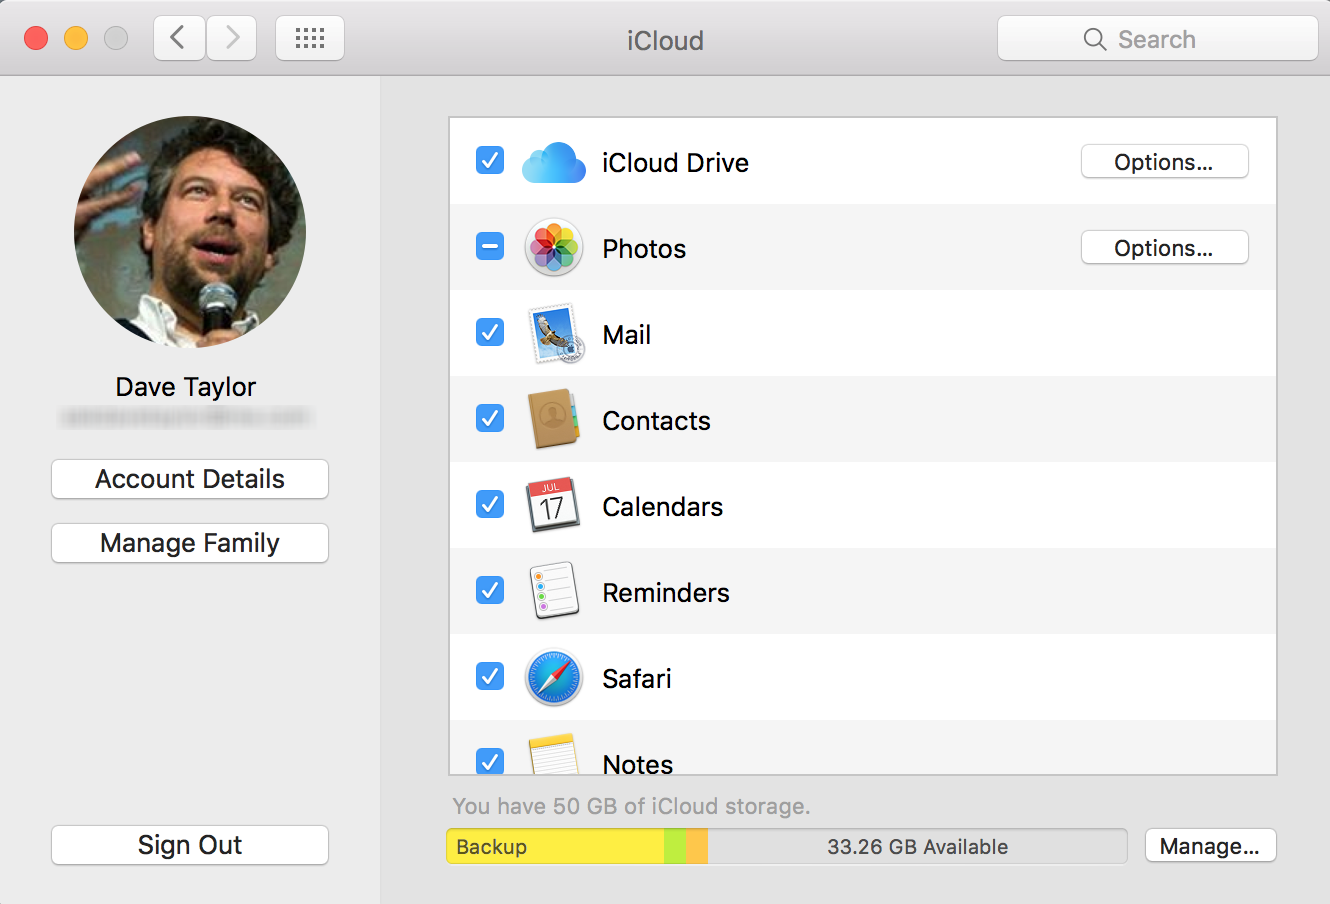 icloud apple id 2-step 2-factor authentication